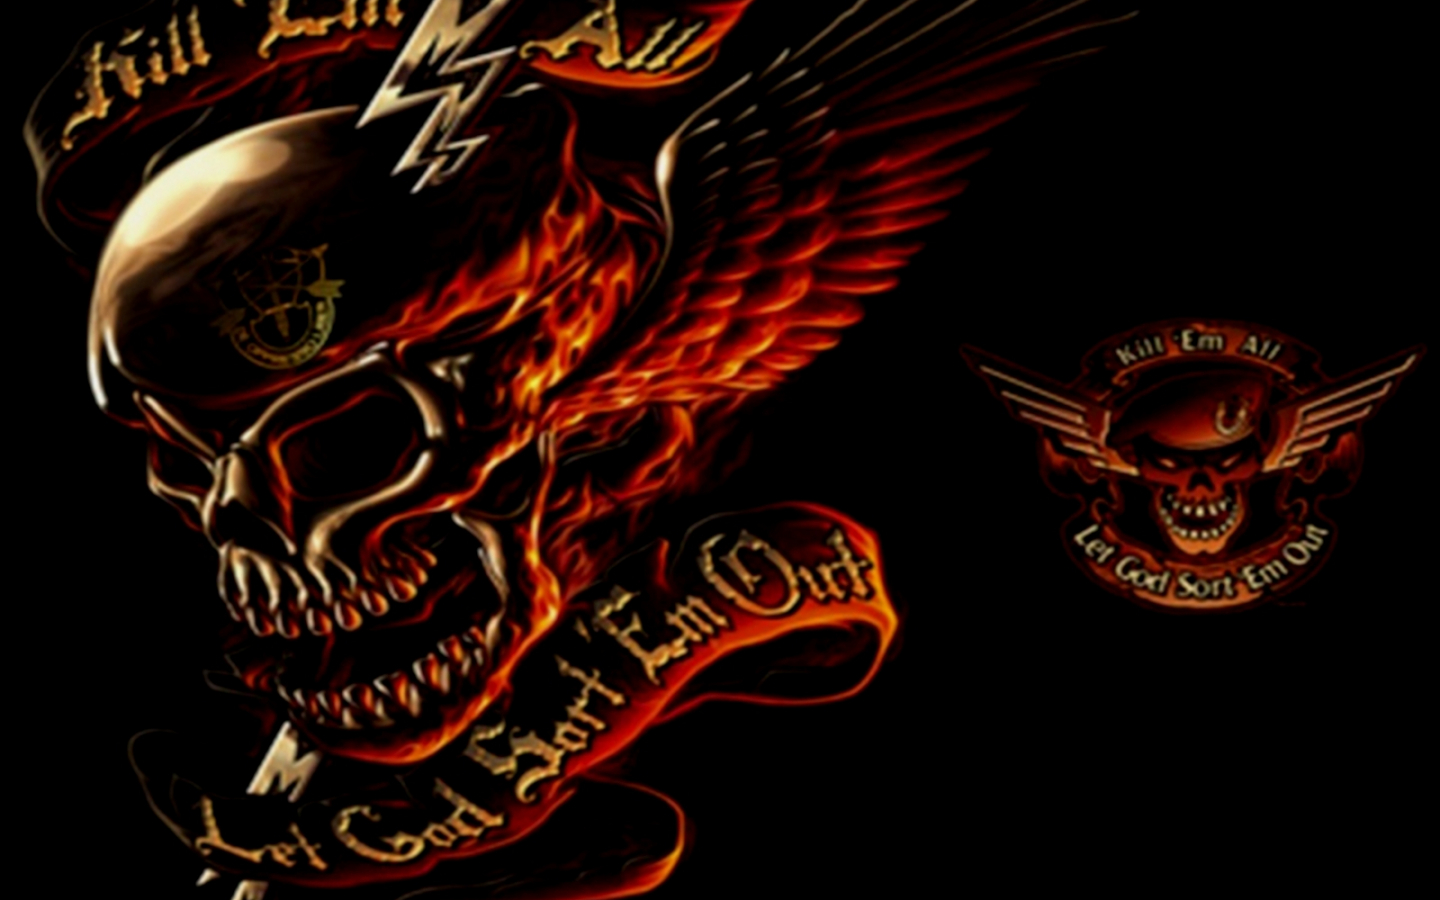 Free download doblelolcom24download scary skulls wallpaper skull dragon  funnyhtm [1600x1200] for your Desktop, Mobile & Tablet | Explore 49+ Wallpaper  Skulls Desktop | Skulls Wallpaper Free, Skull Hd Wallpapers, Free Skull  Wallpaper and Screensavers